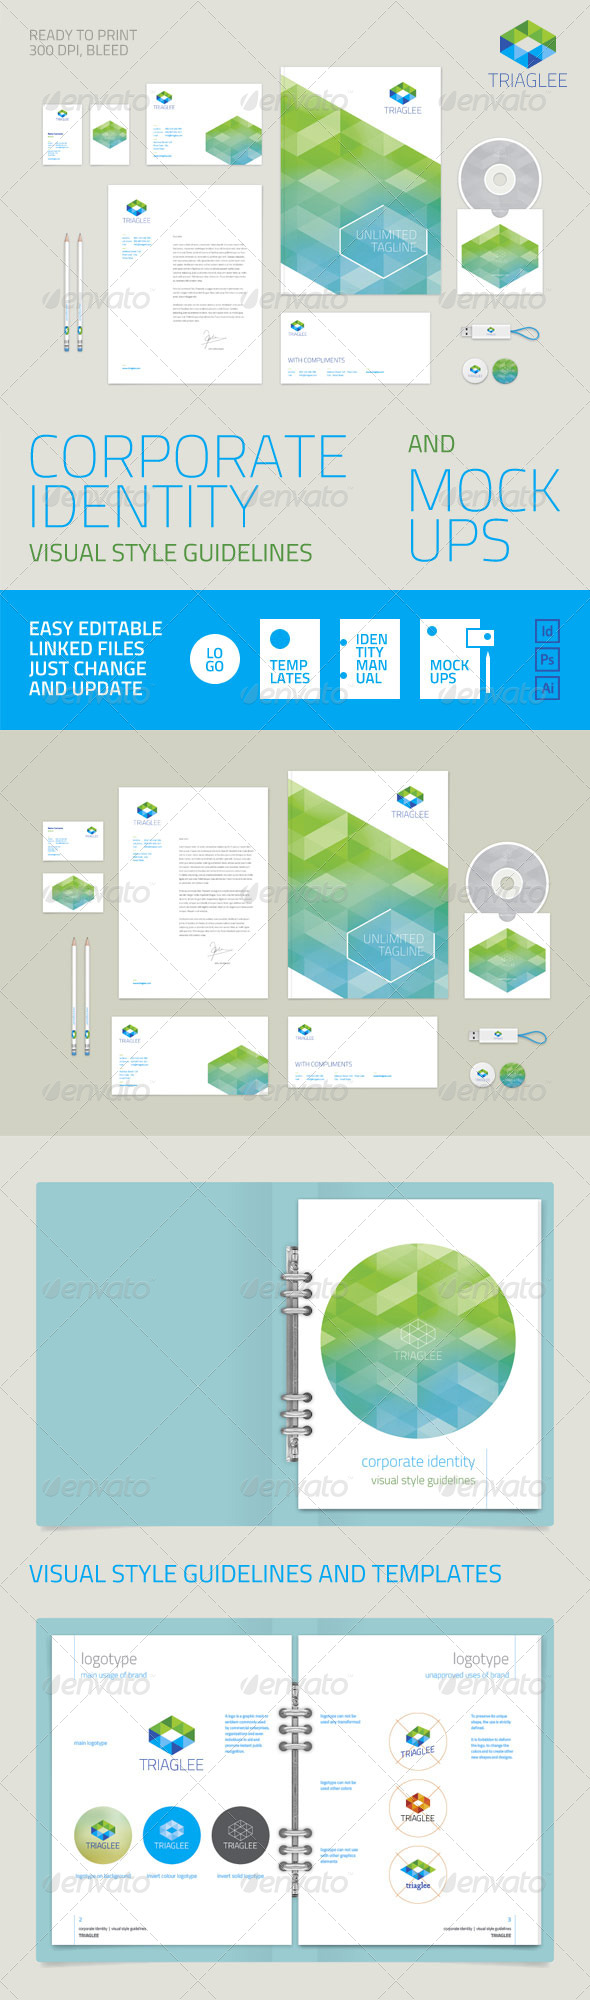 Corporate Identity Guidelines and Mock-ups - Stationery Print Templates